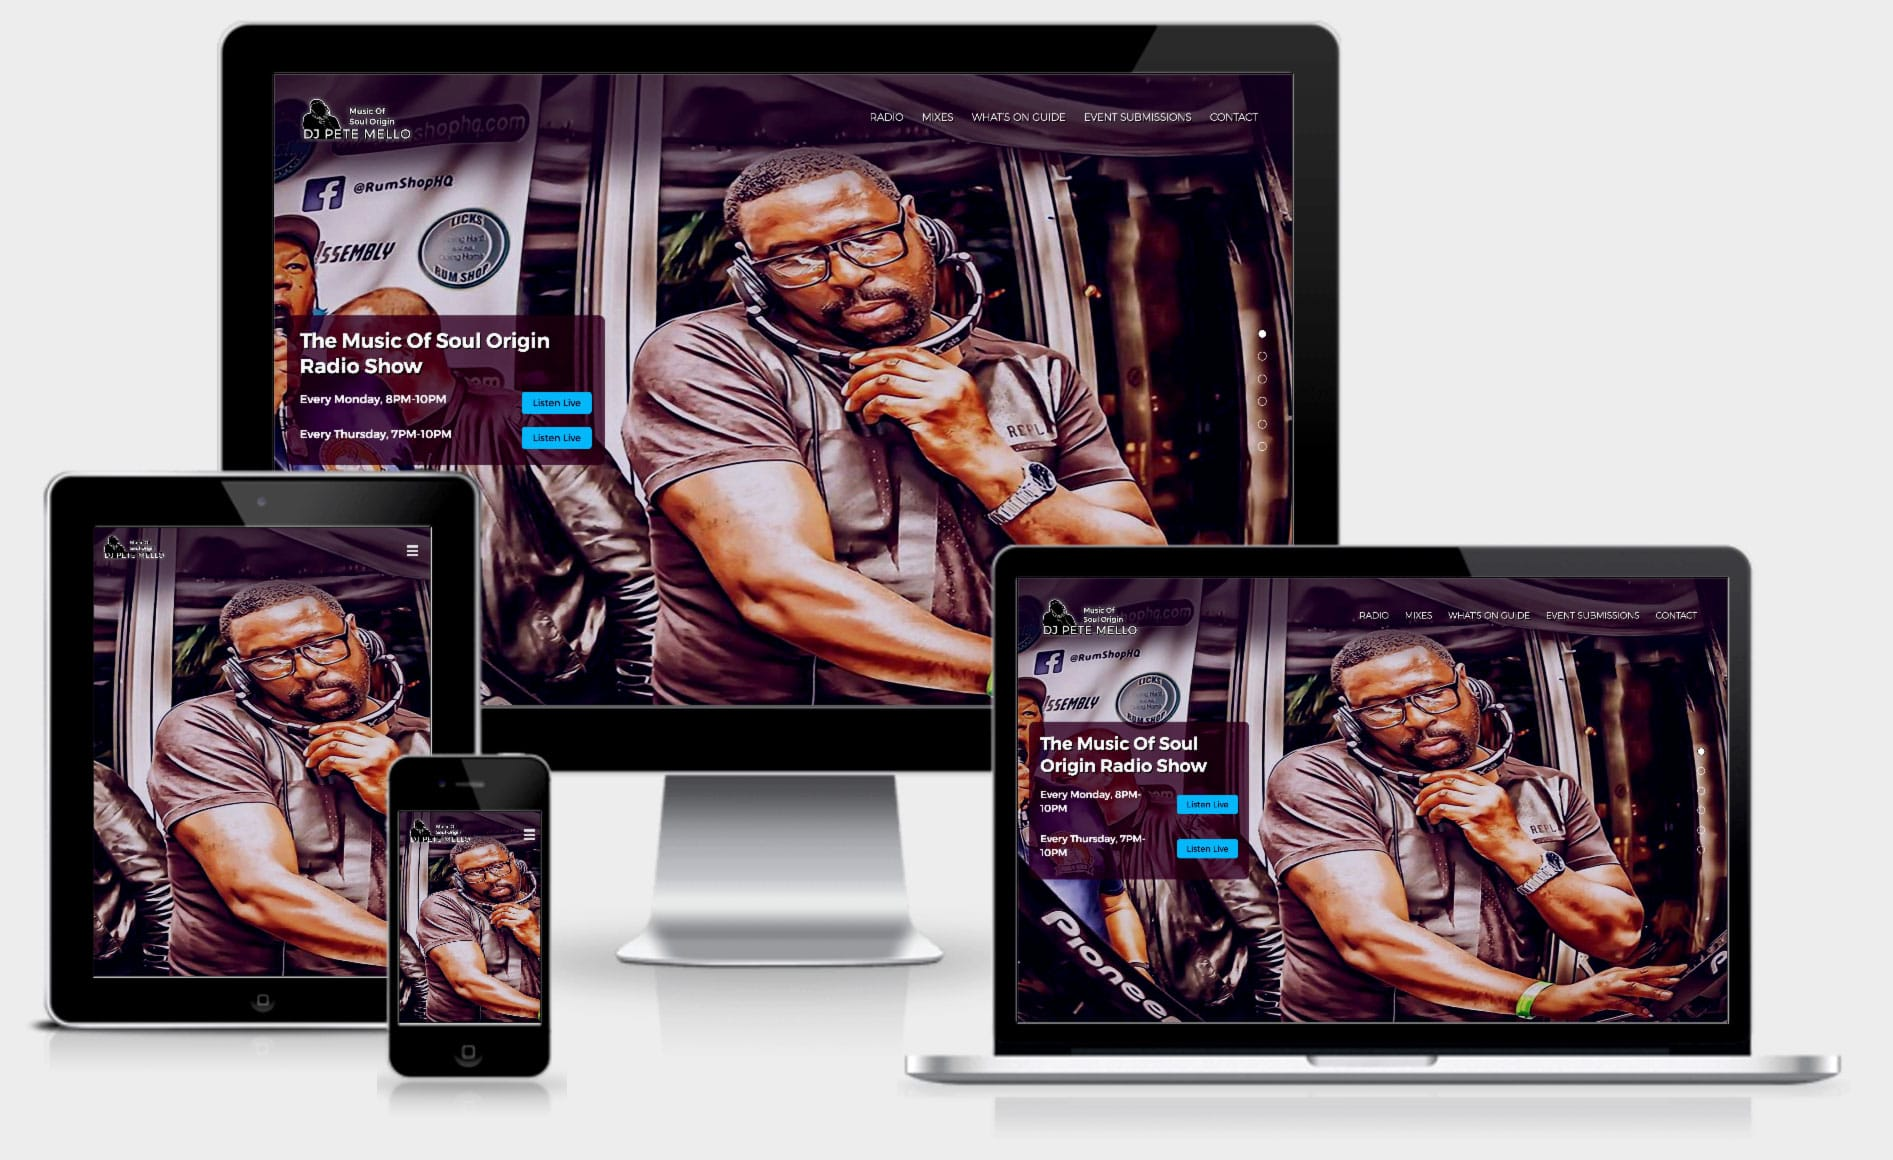 dj-pete-mello-mpower-webdesign-template